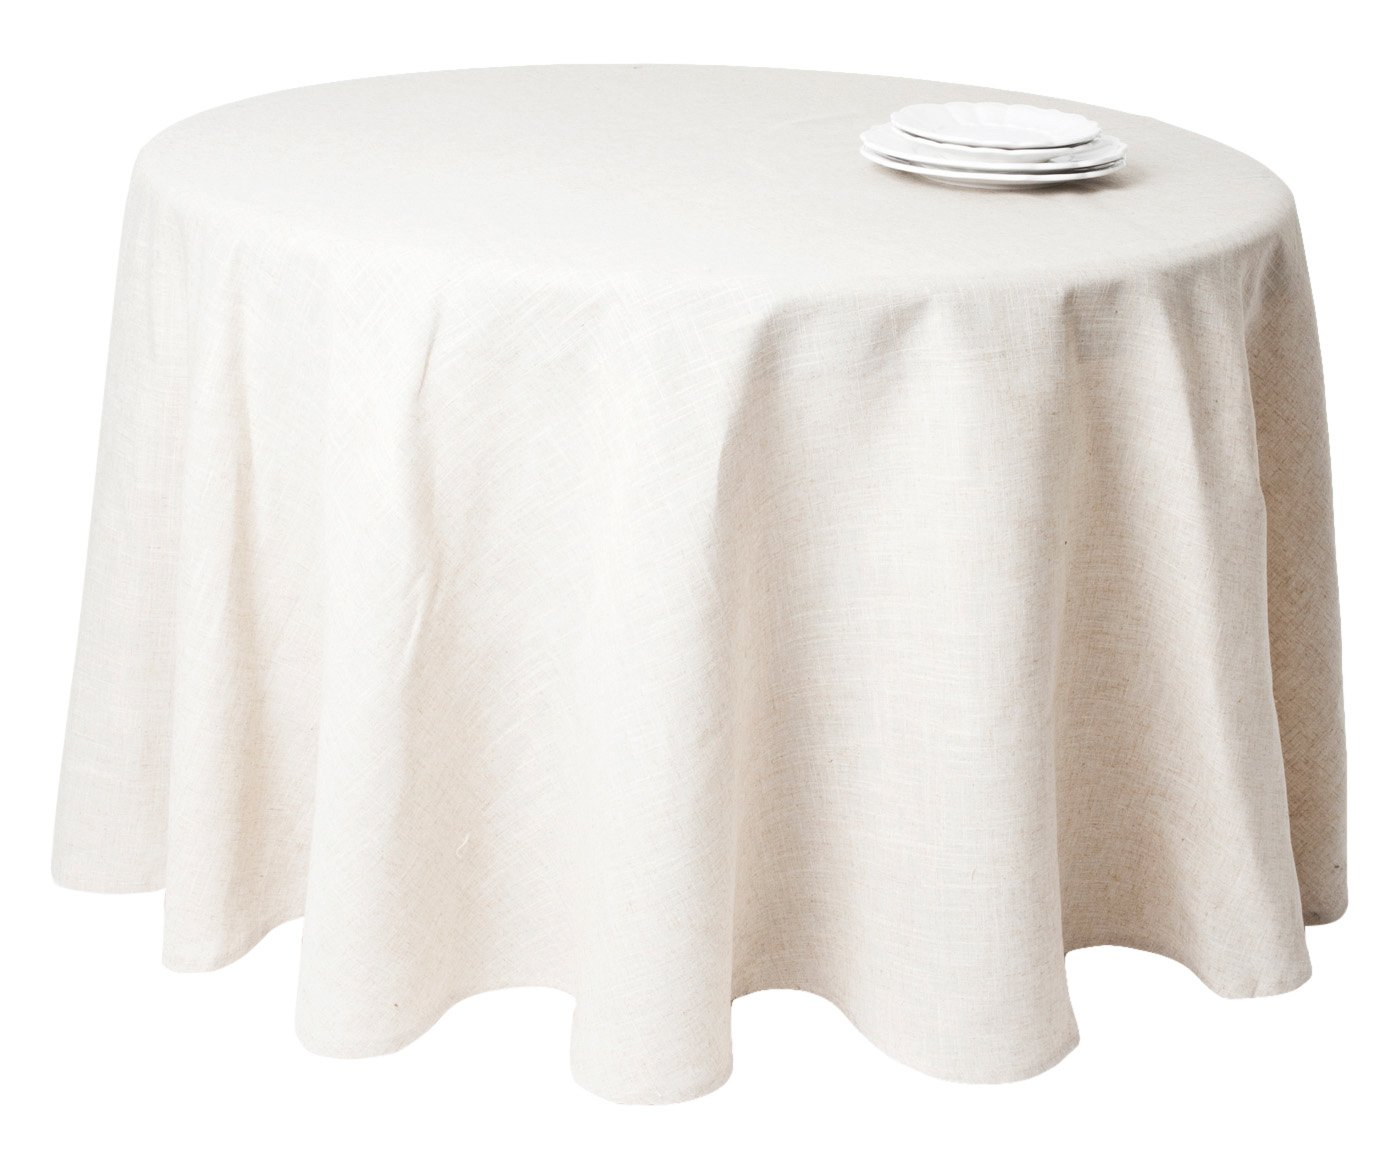 SARO LIFESTYLE 731 Toscana Tablecloths, 132-Inch, Round, Natural